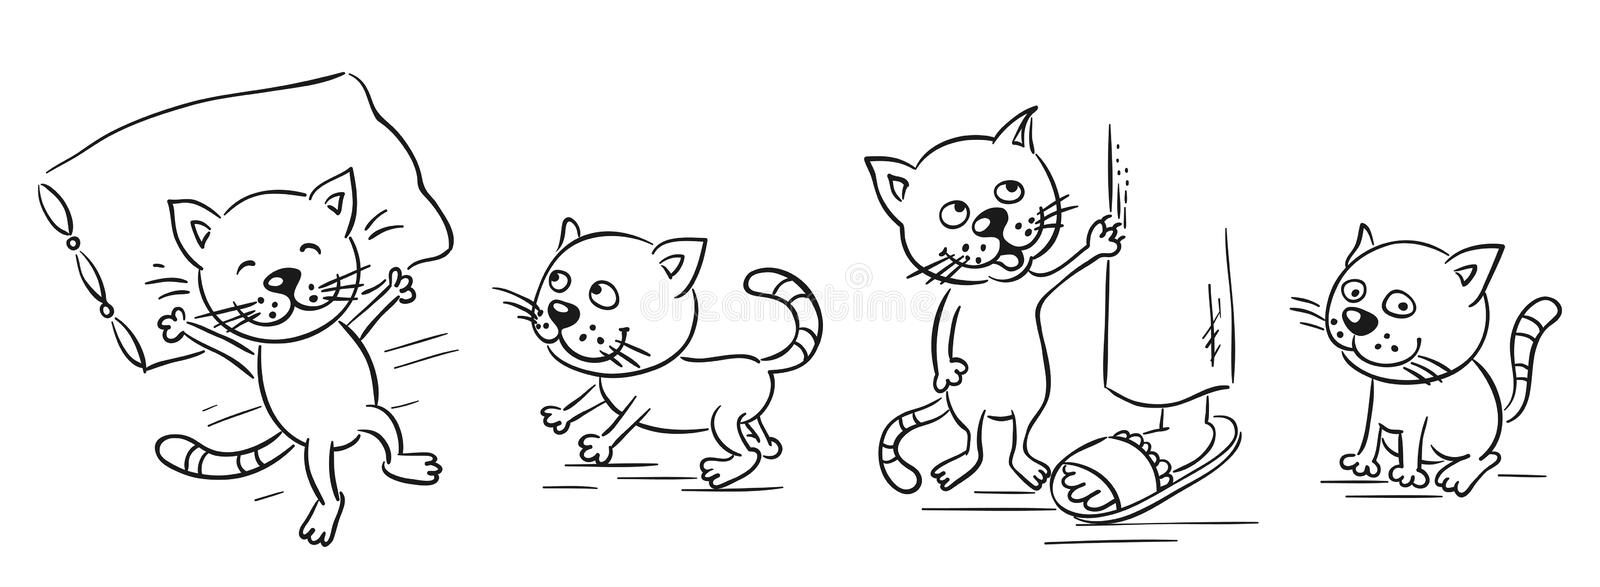 Cartoon cat royalty free illustration